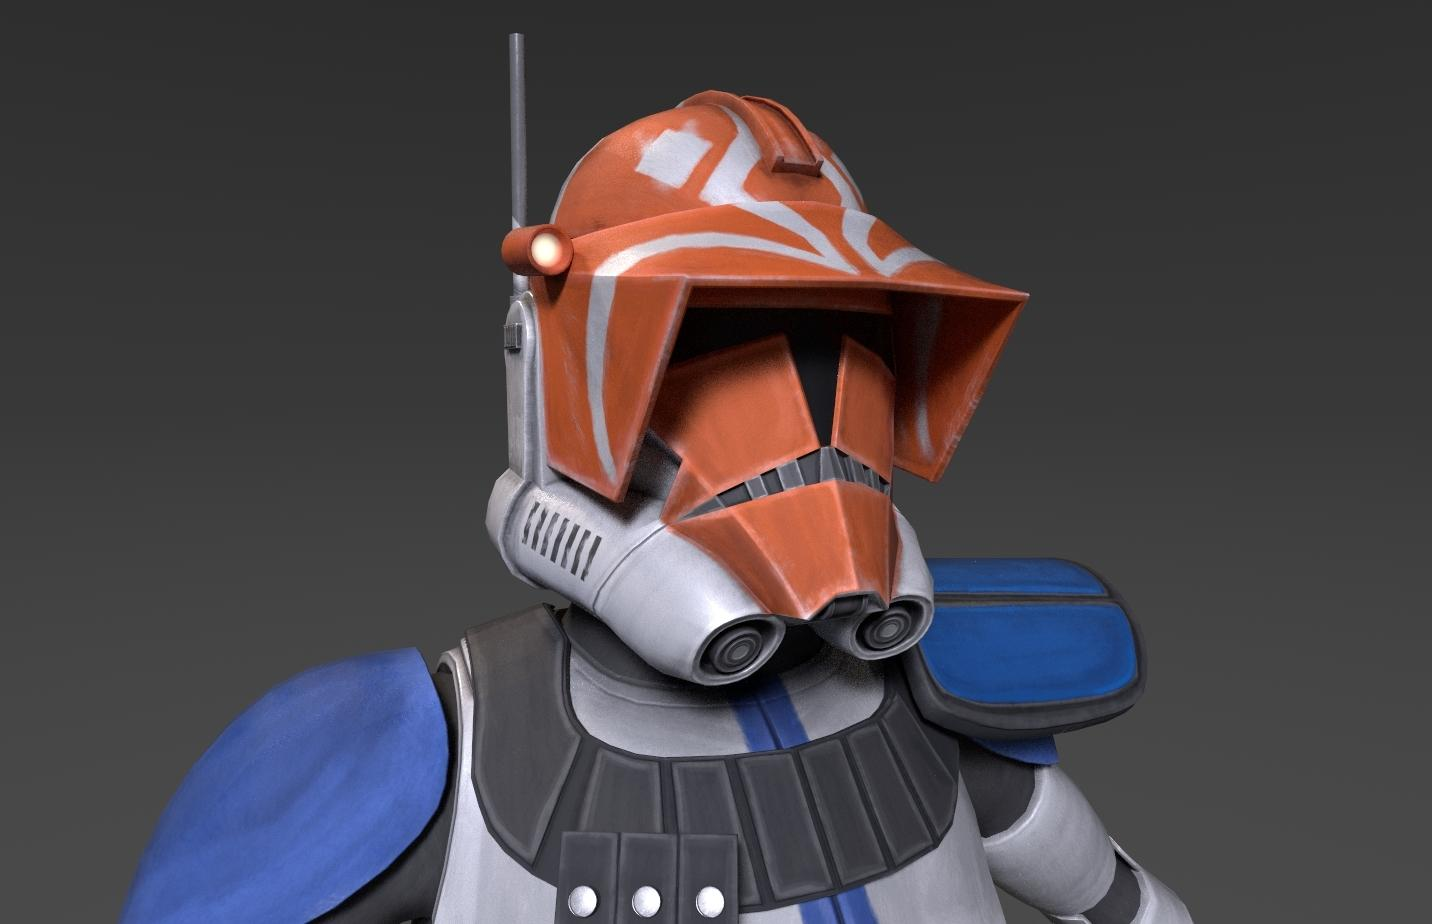 Creating something fun to celebrate the end of The Clone Wars :) Modelled and textured by me